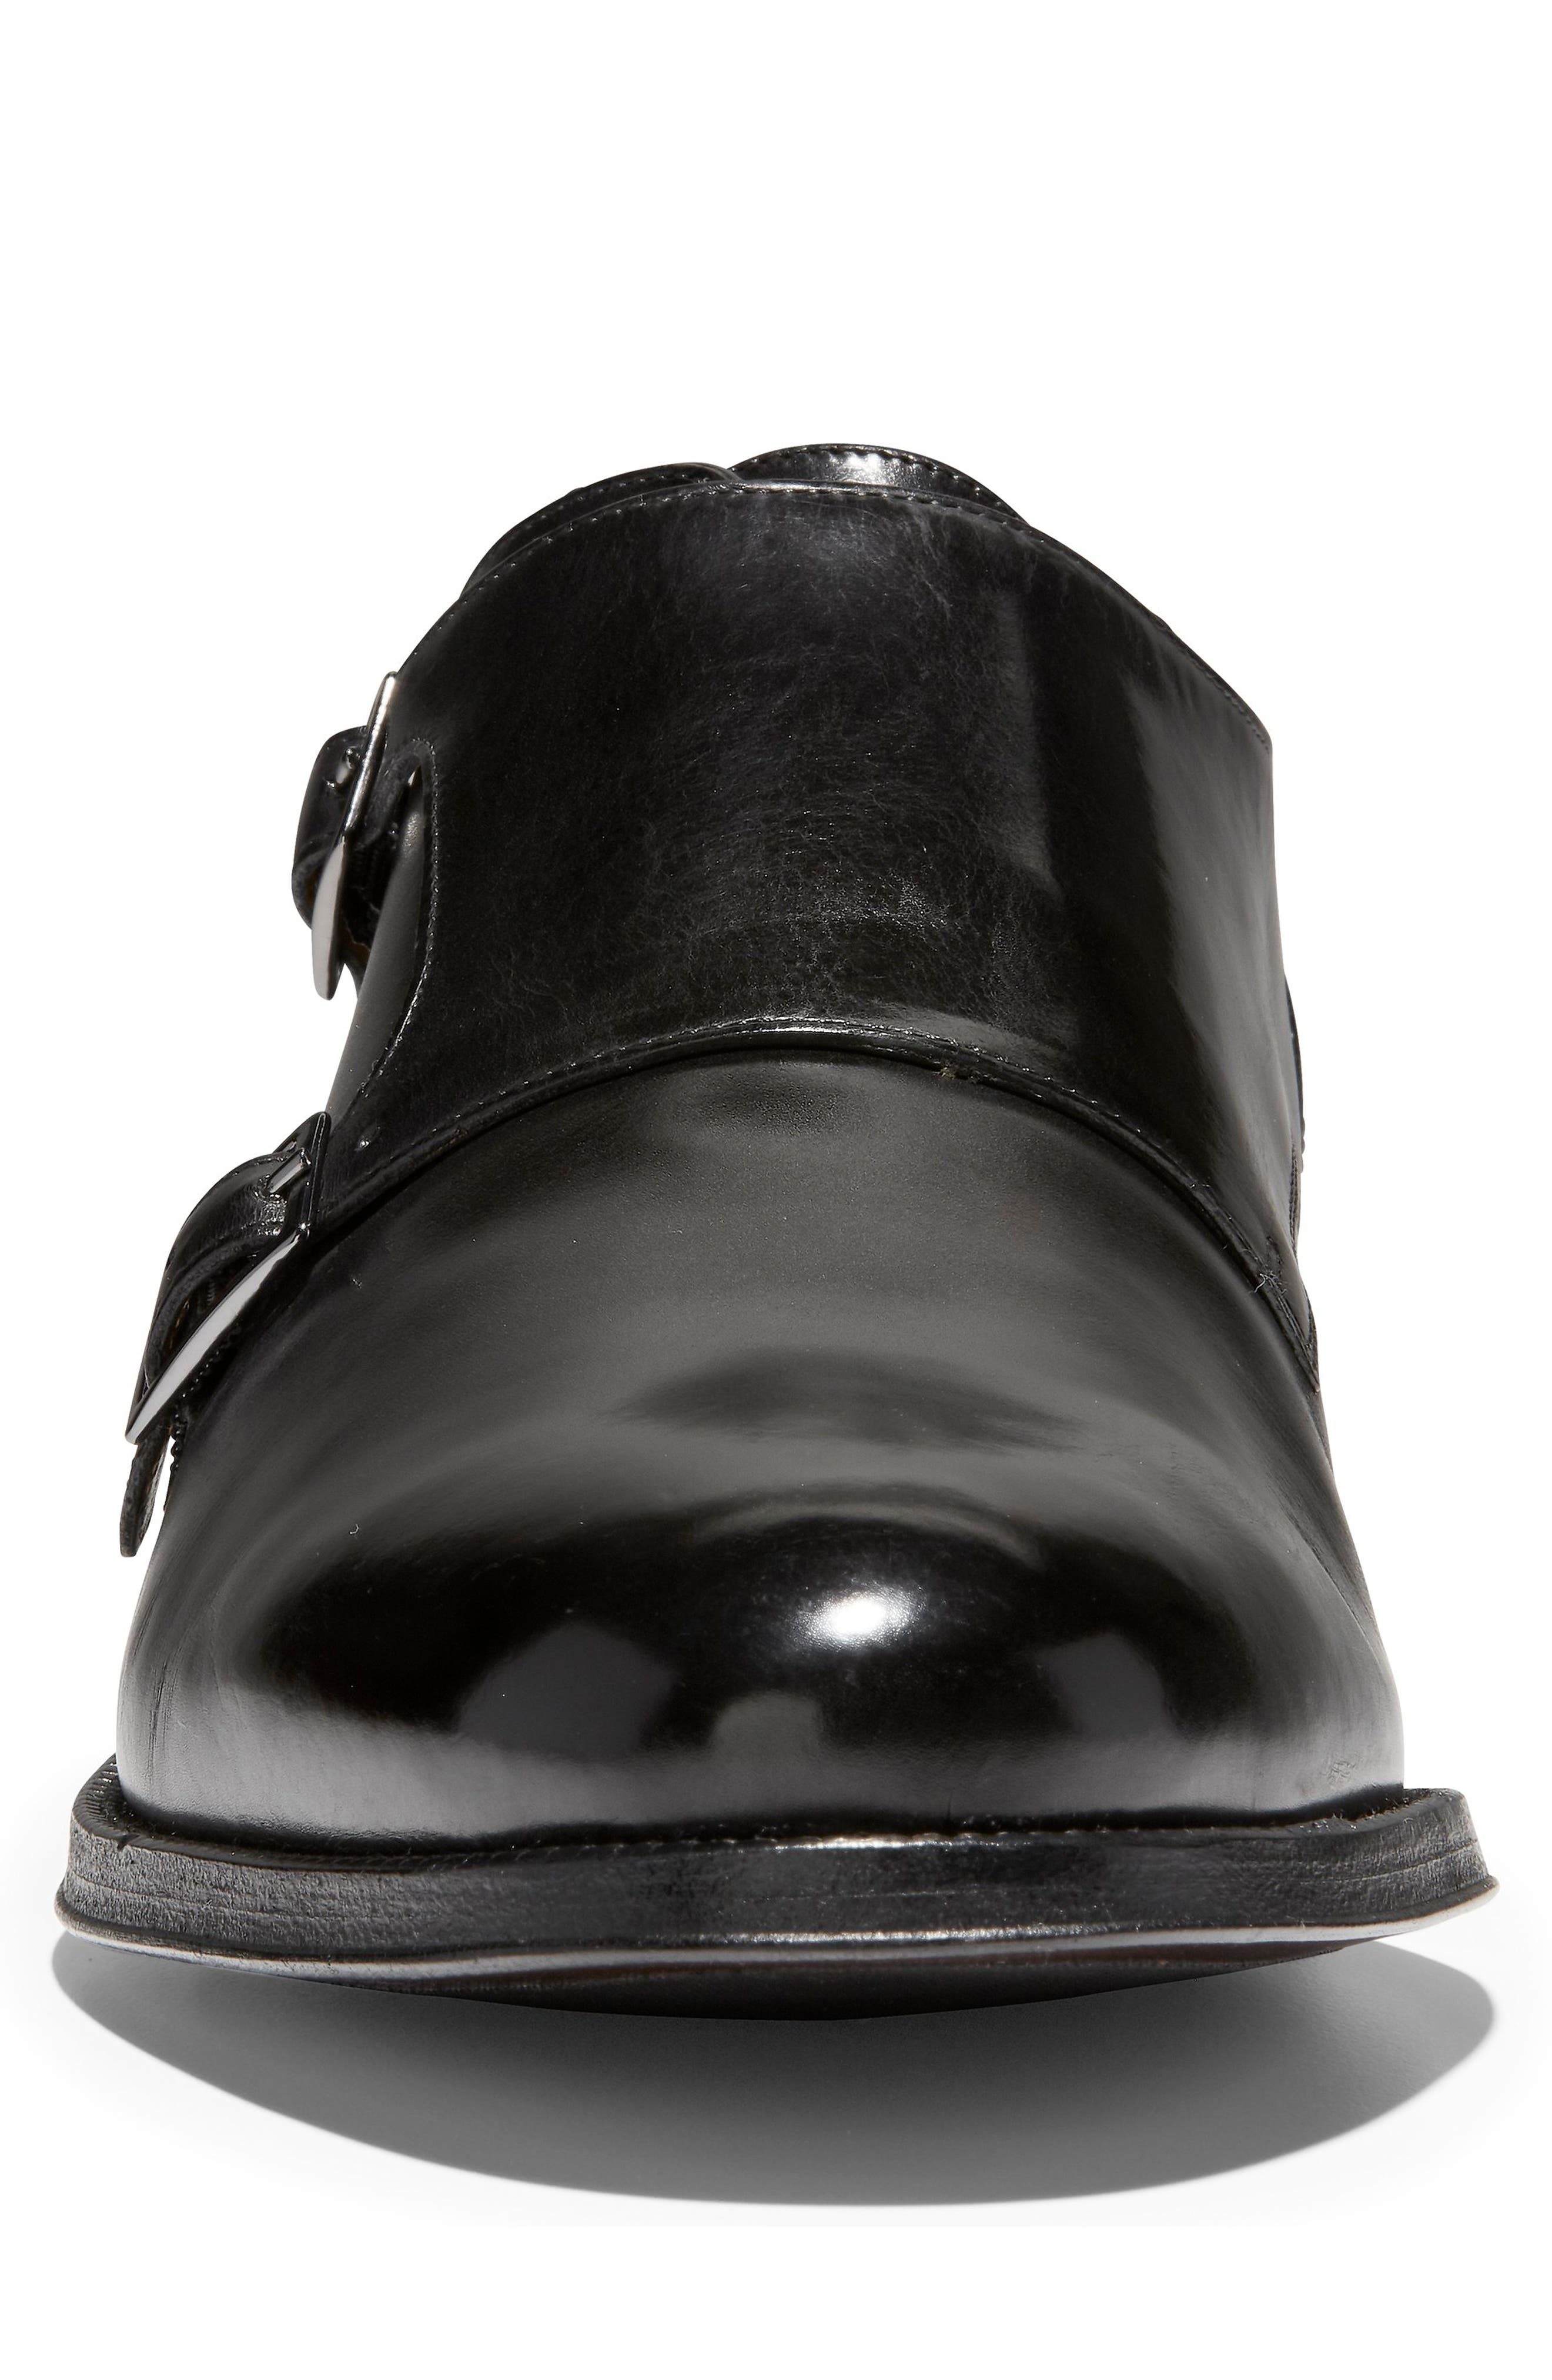 American Classics Gramercy Double Strap Monk Shoe,                             Alternate thumbnail 4, color,                             BLACK LEATHER